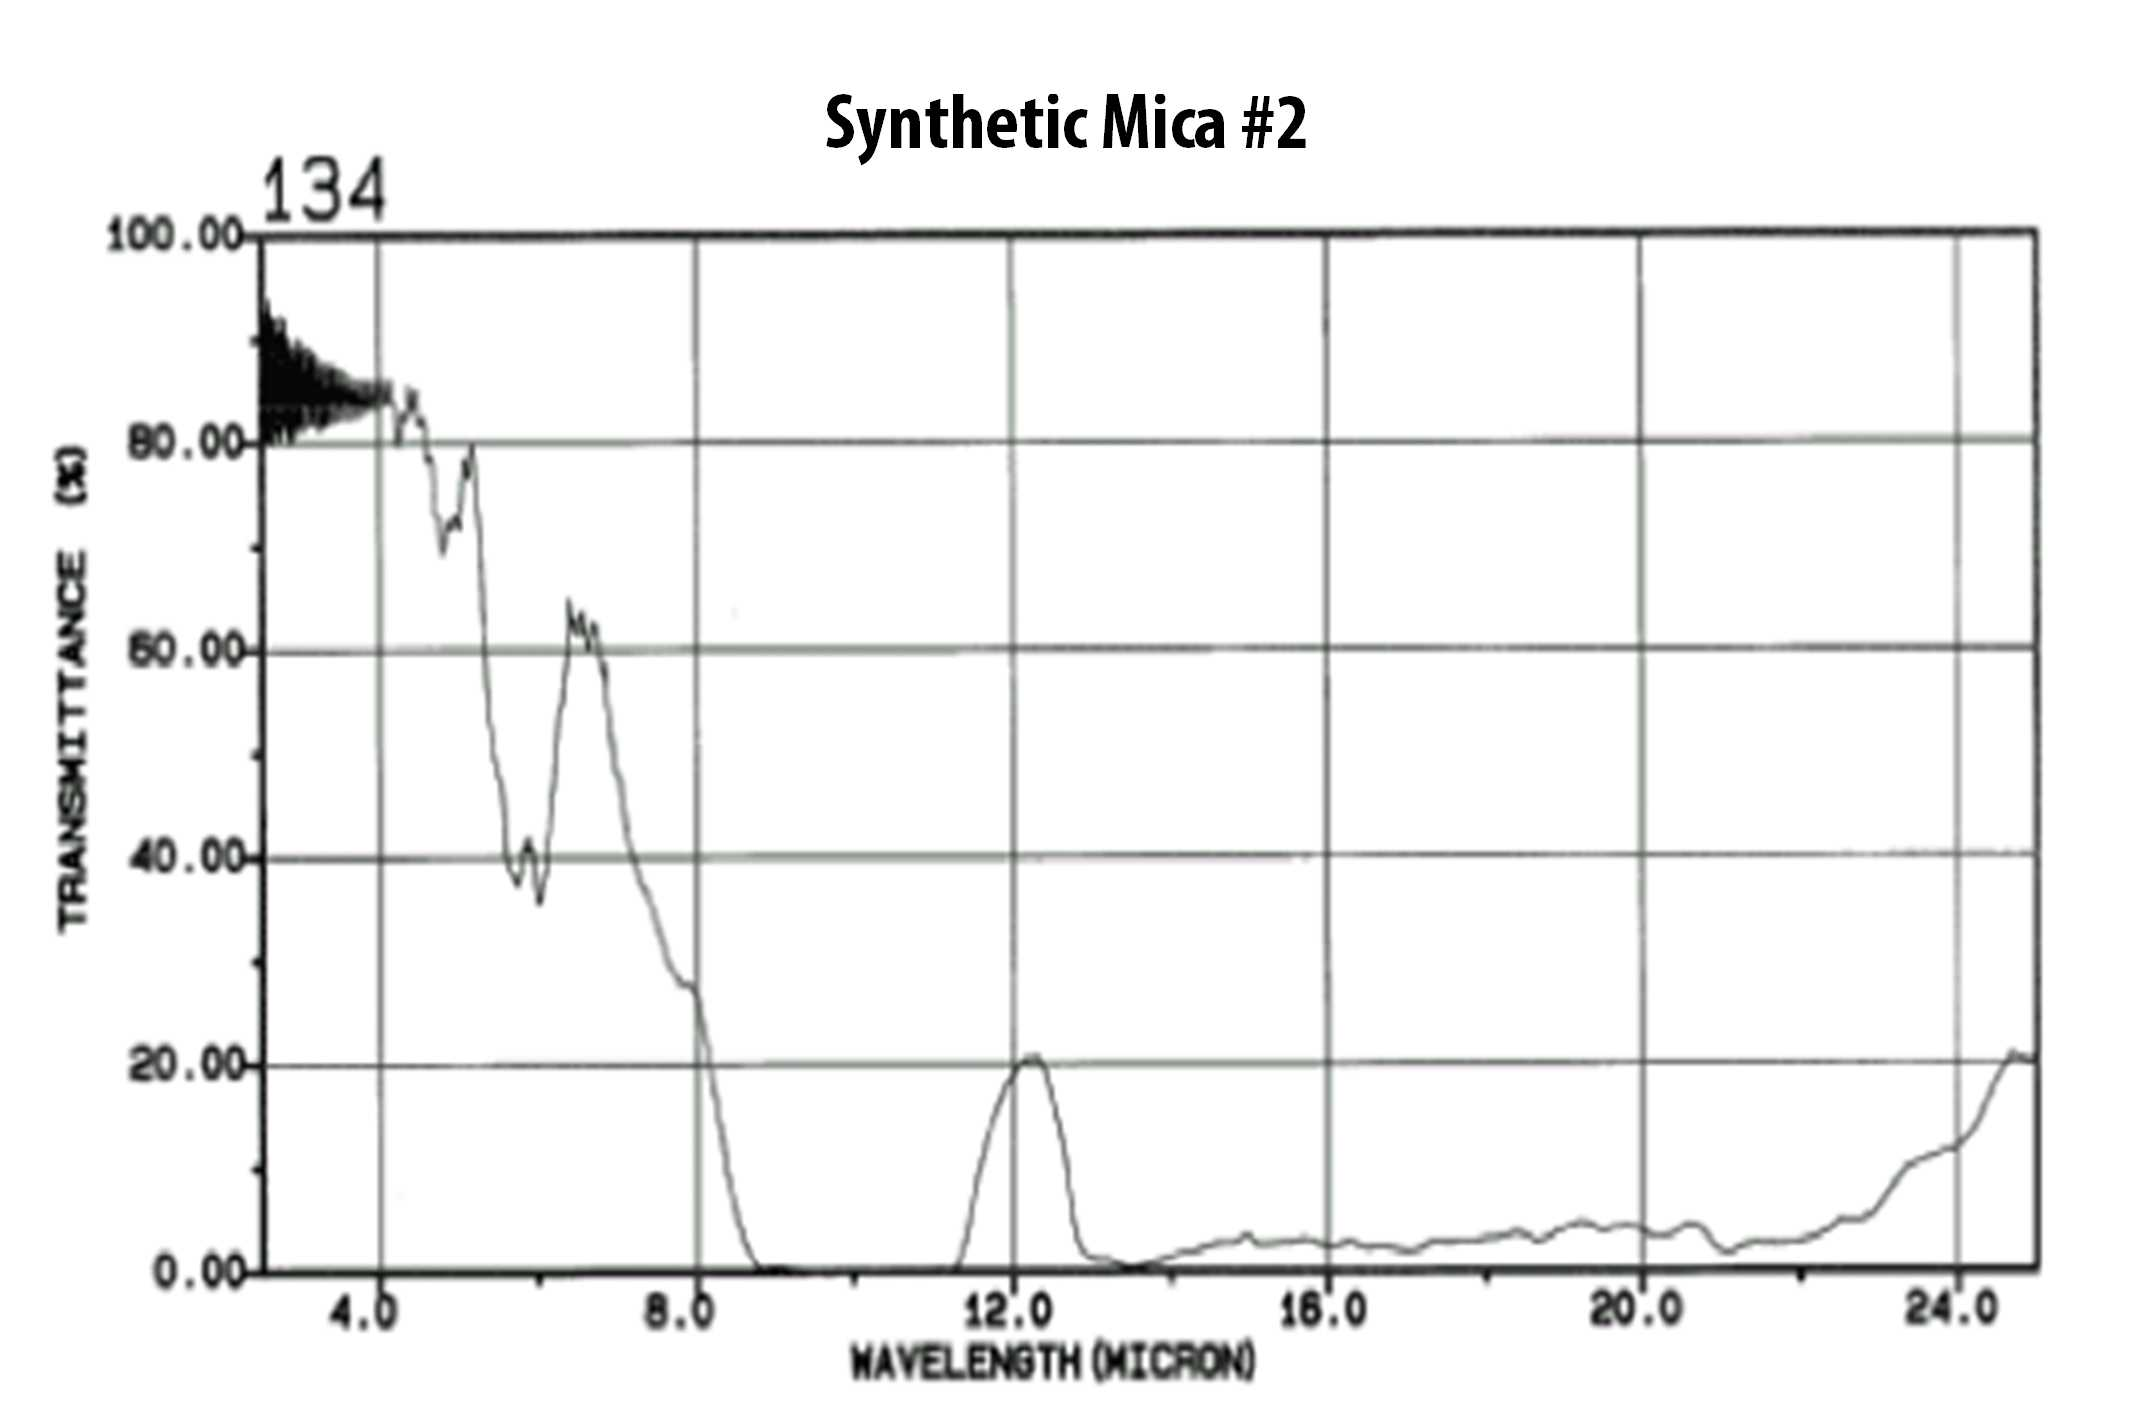 Chart of infrared ray transmission rate of synthetic mica #2